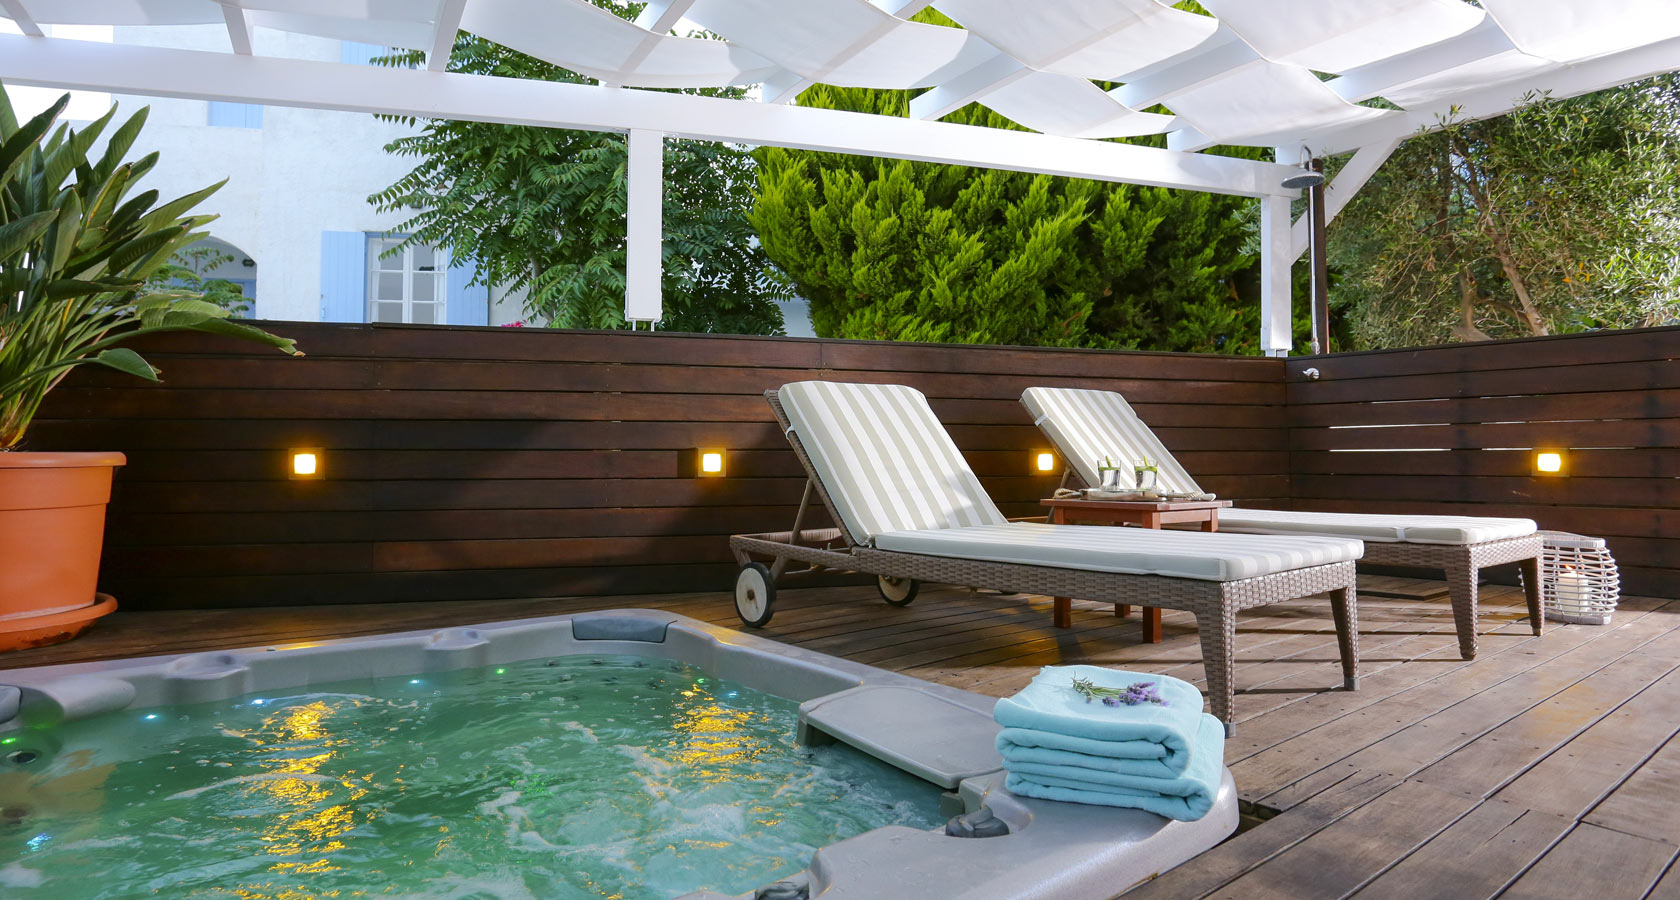 Stelia Mare Hotel Paros Greece – Outdoor Jacuzzi